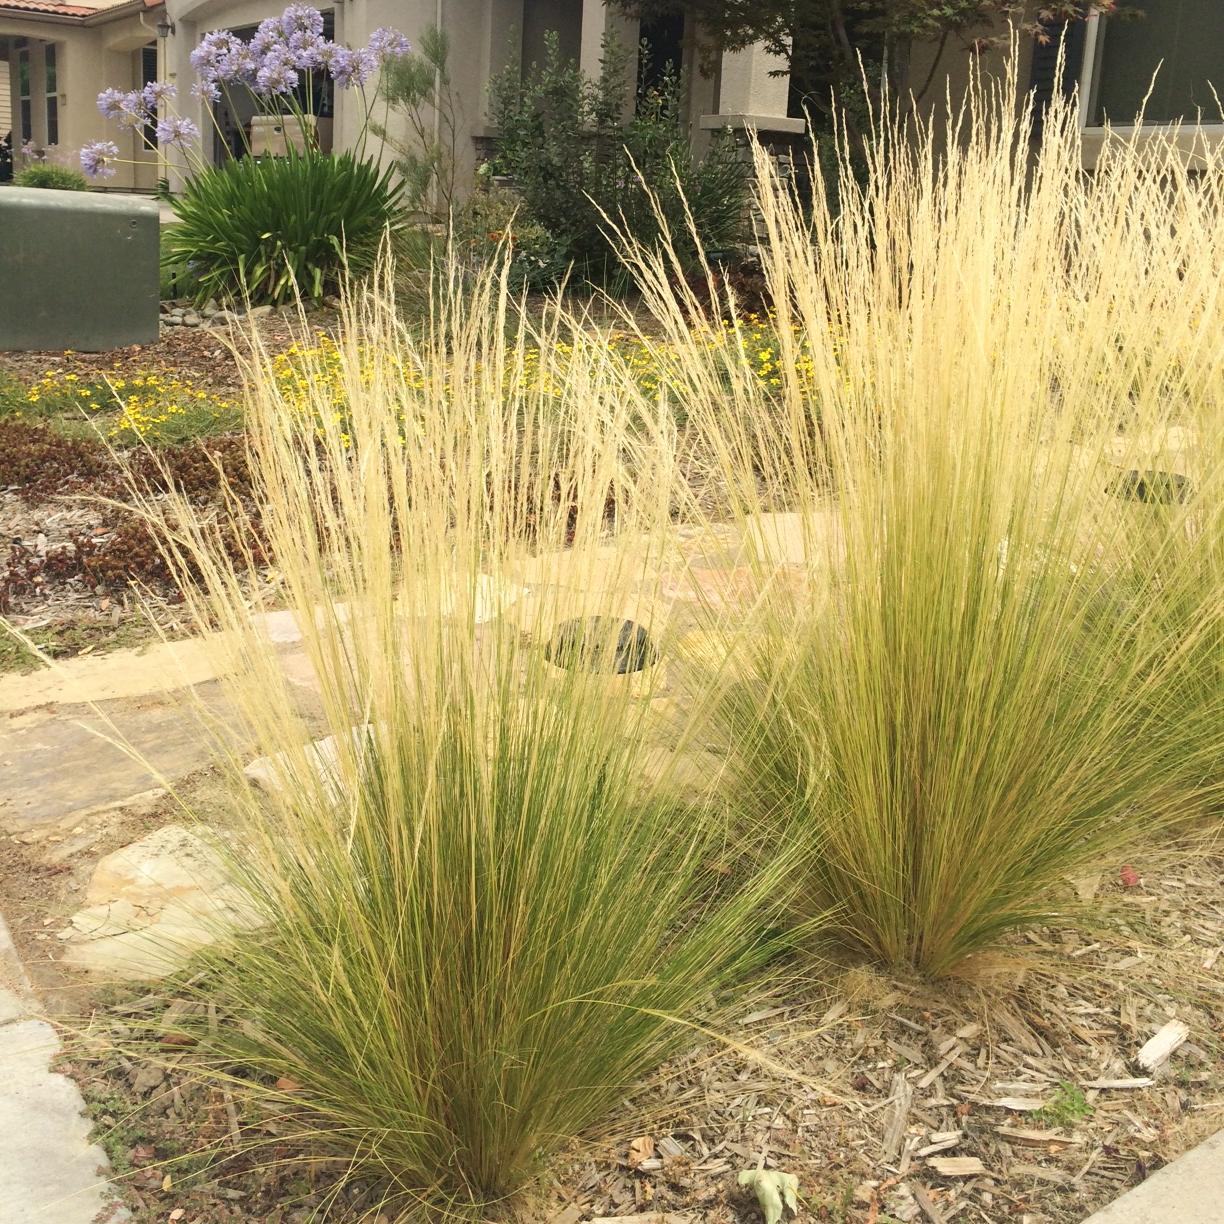 Mexican Feather Grass Invasive Beauty Can Be Deceiving